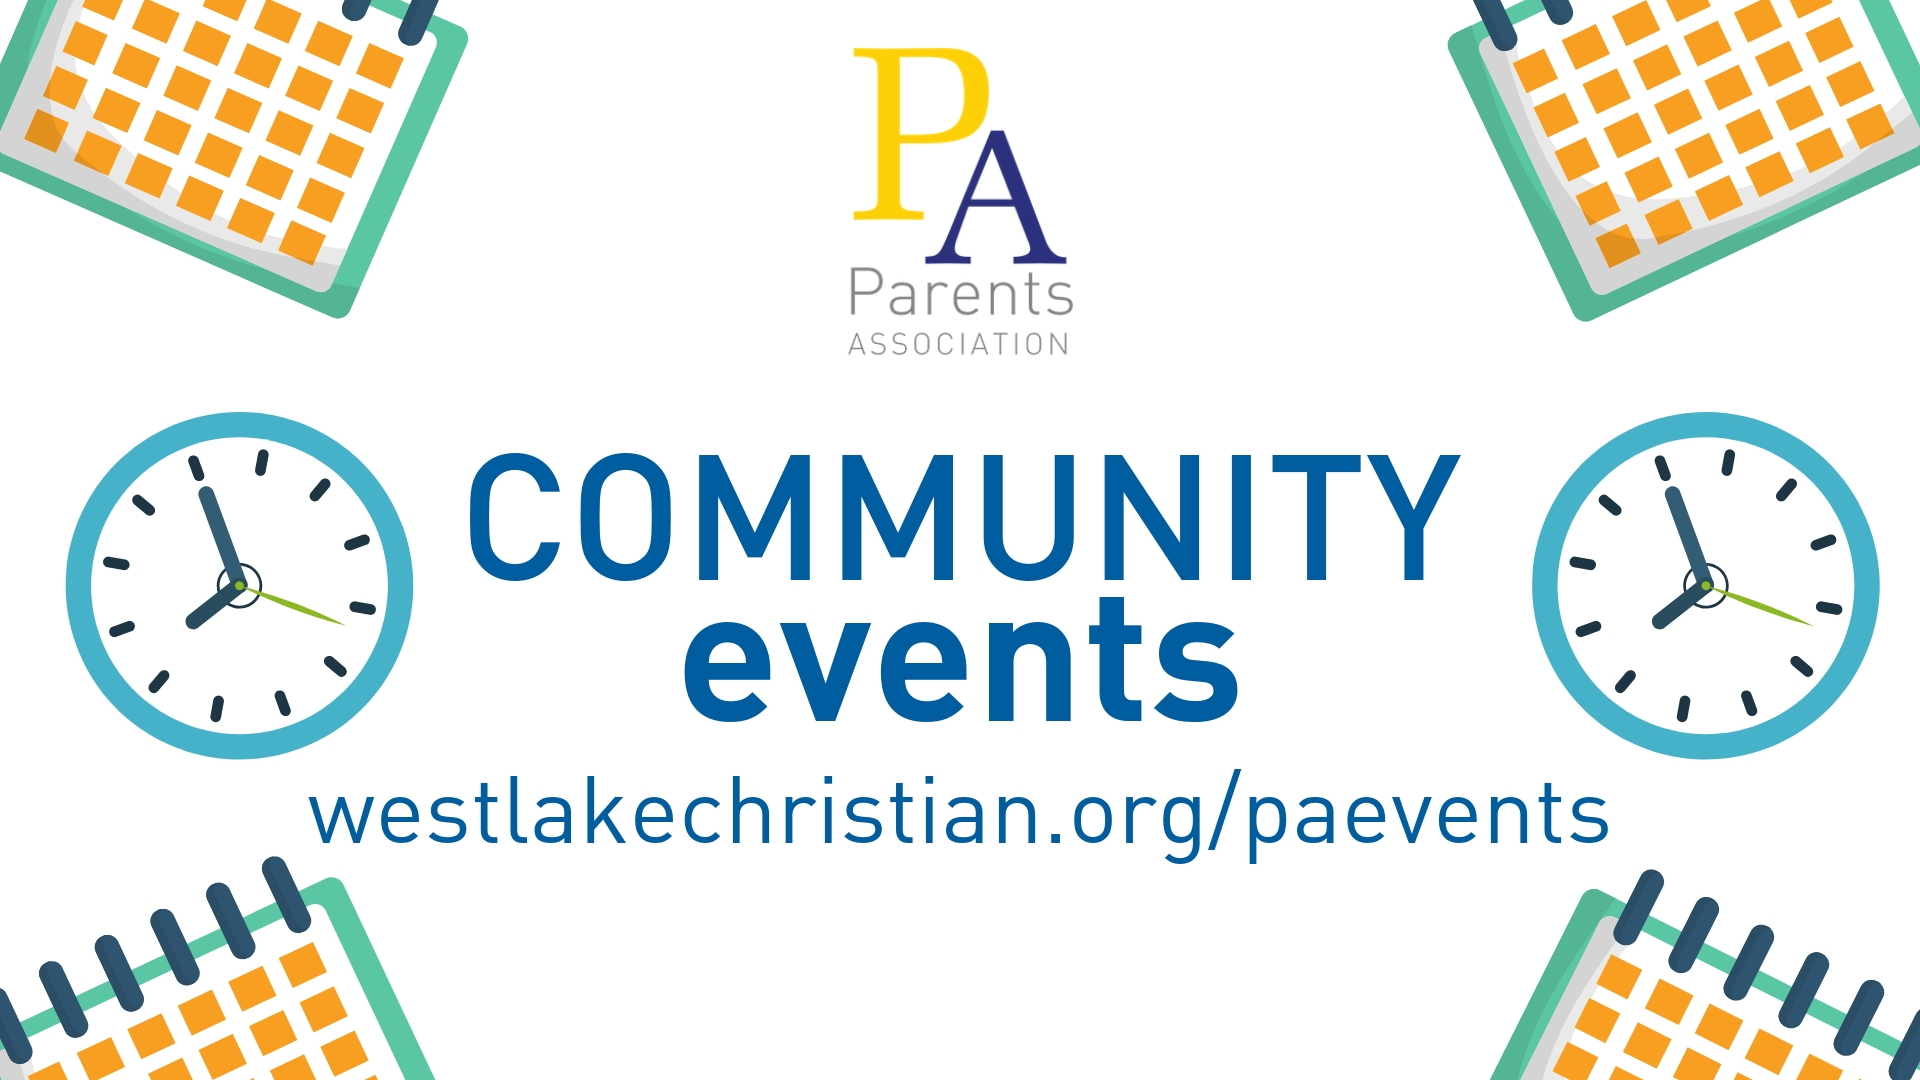 See our Community Events with our Parents Association